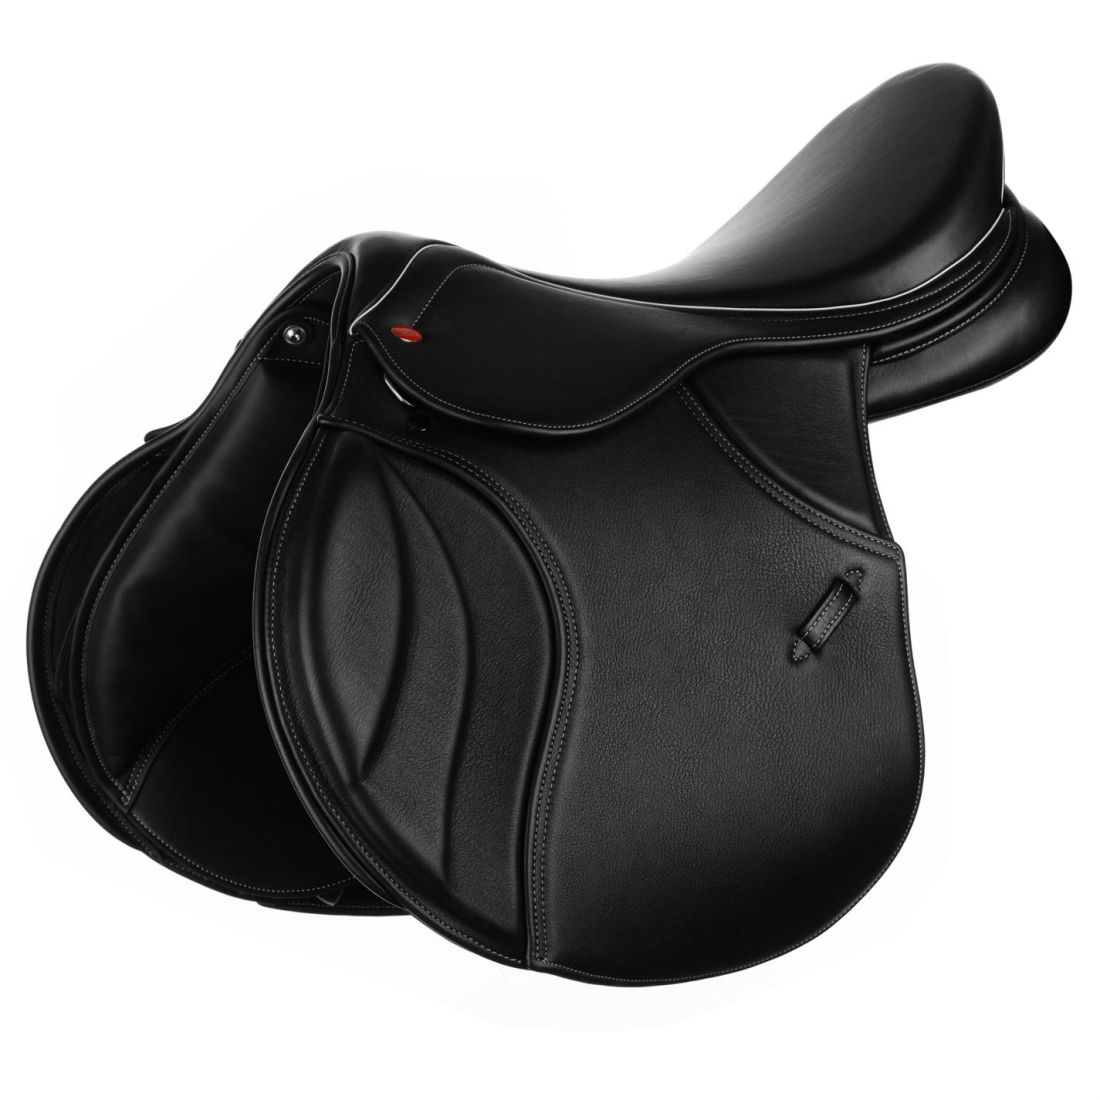 John Whitaker Ogreenon Jumping Saddle Unisex Saddlery Horses